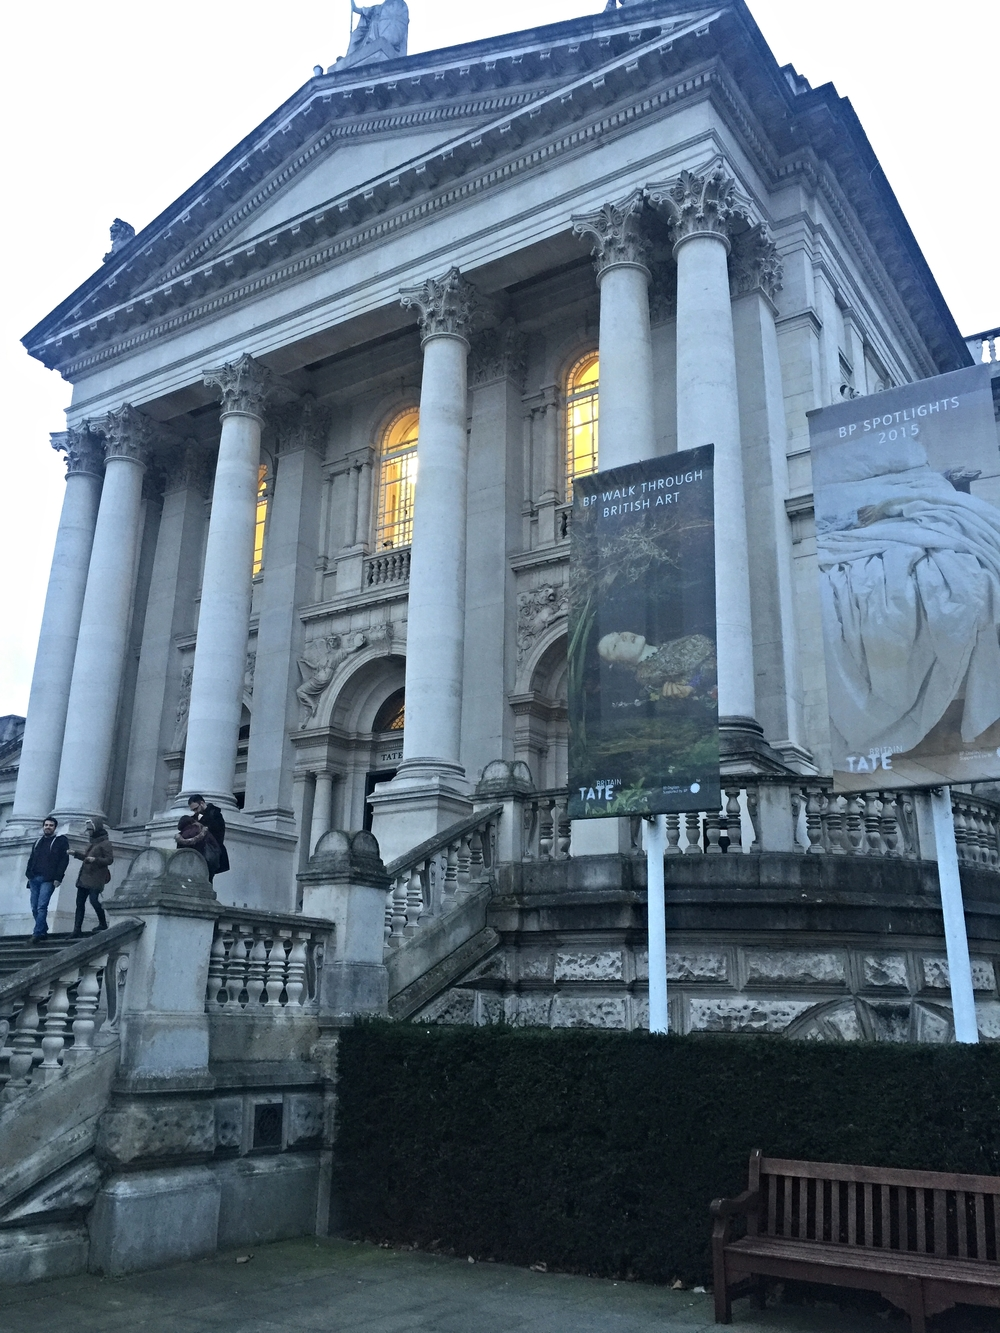 Dusk falls on the Tate Britain at the end of my visit-- I promise to return on my next trip to London.